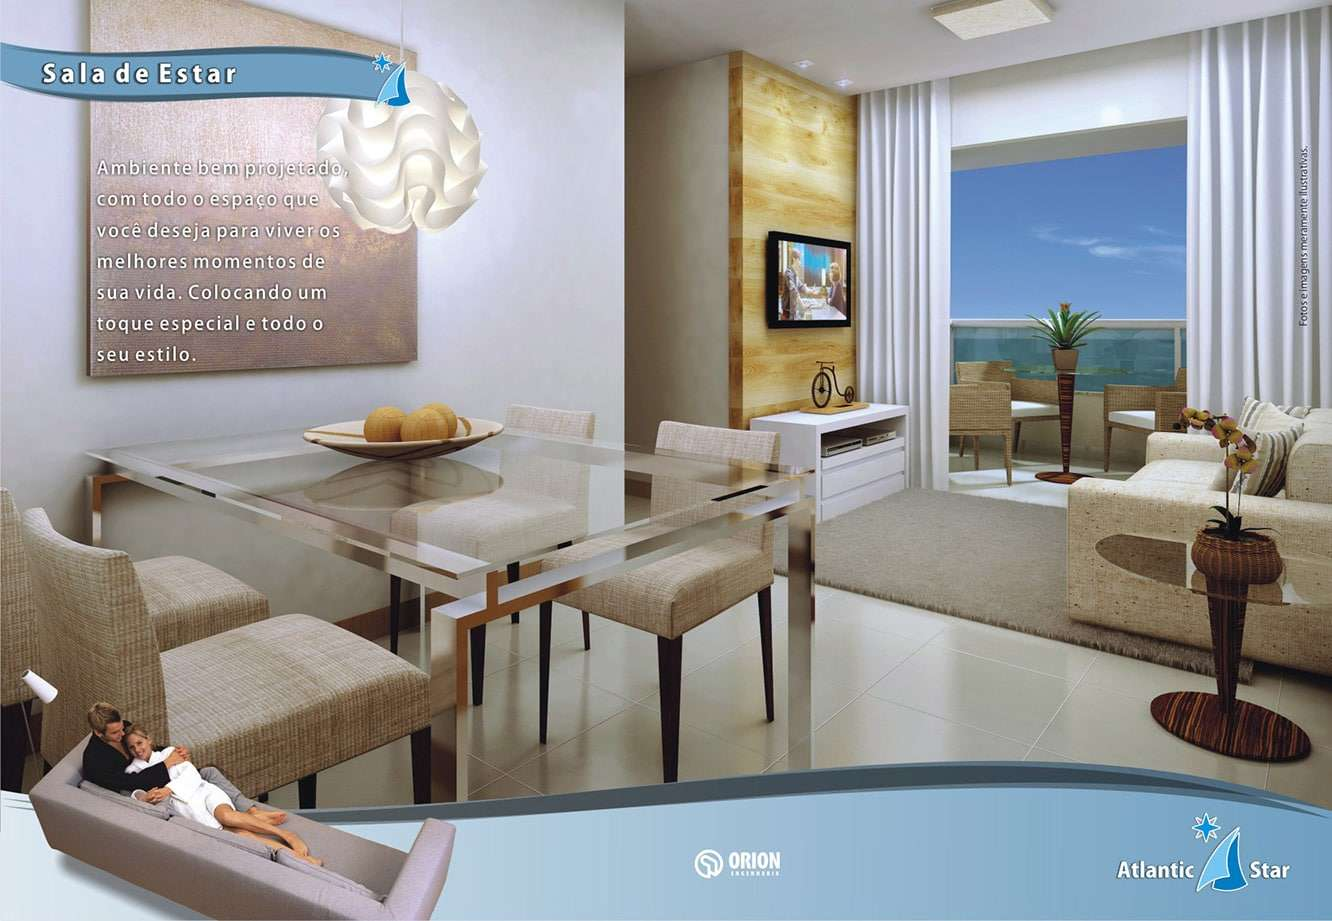 Residencial Atlantic Star   Revista Pagina10 11